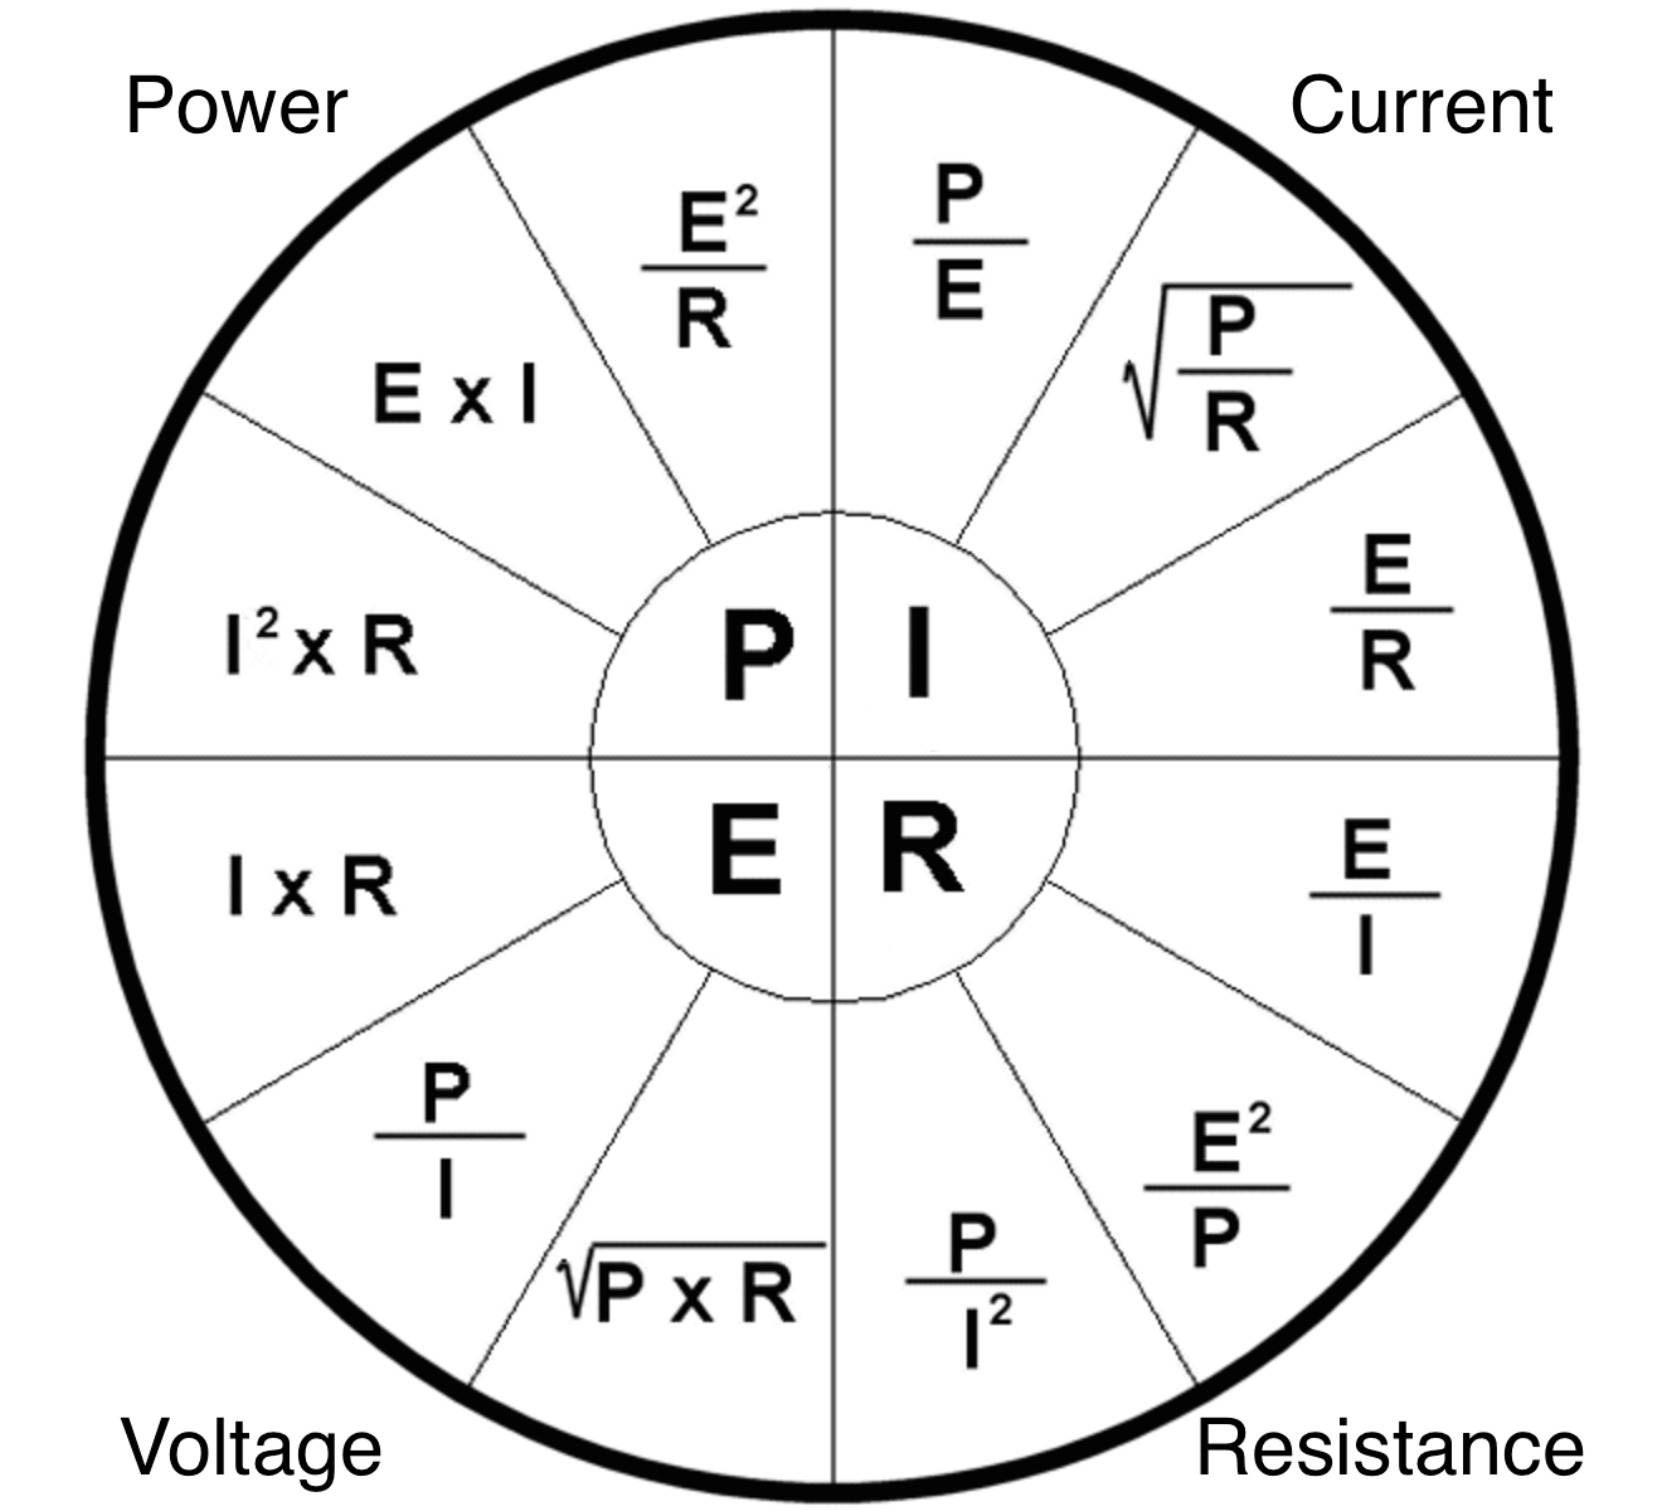 medium resolution of chart showing all the formulas to find volts watts amps and ohms using the ohm s law and watt s law